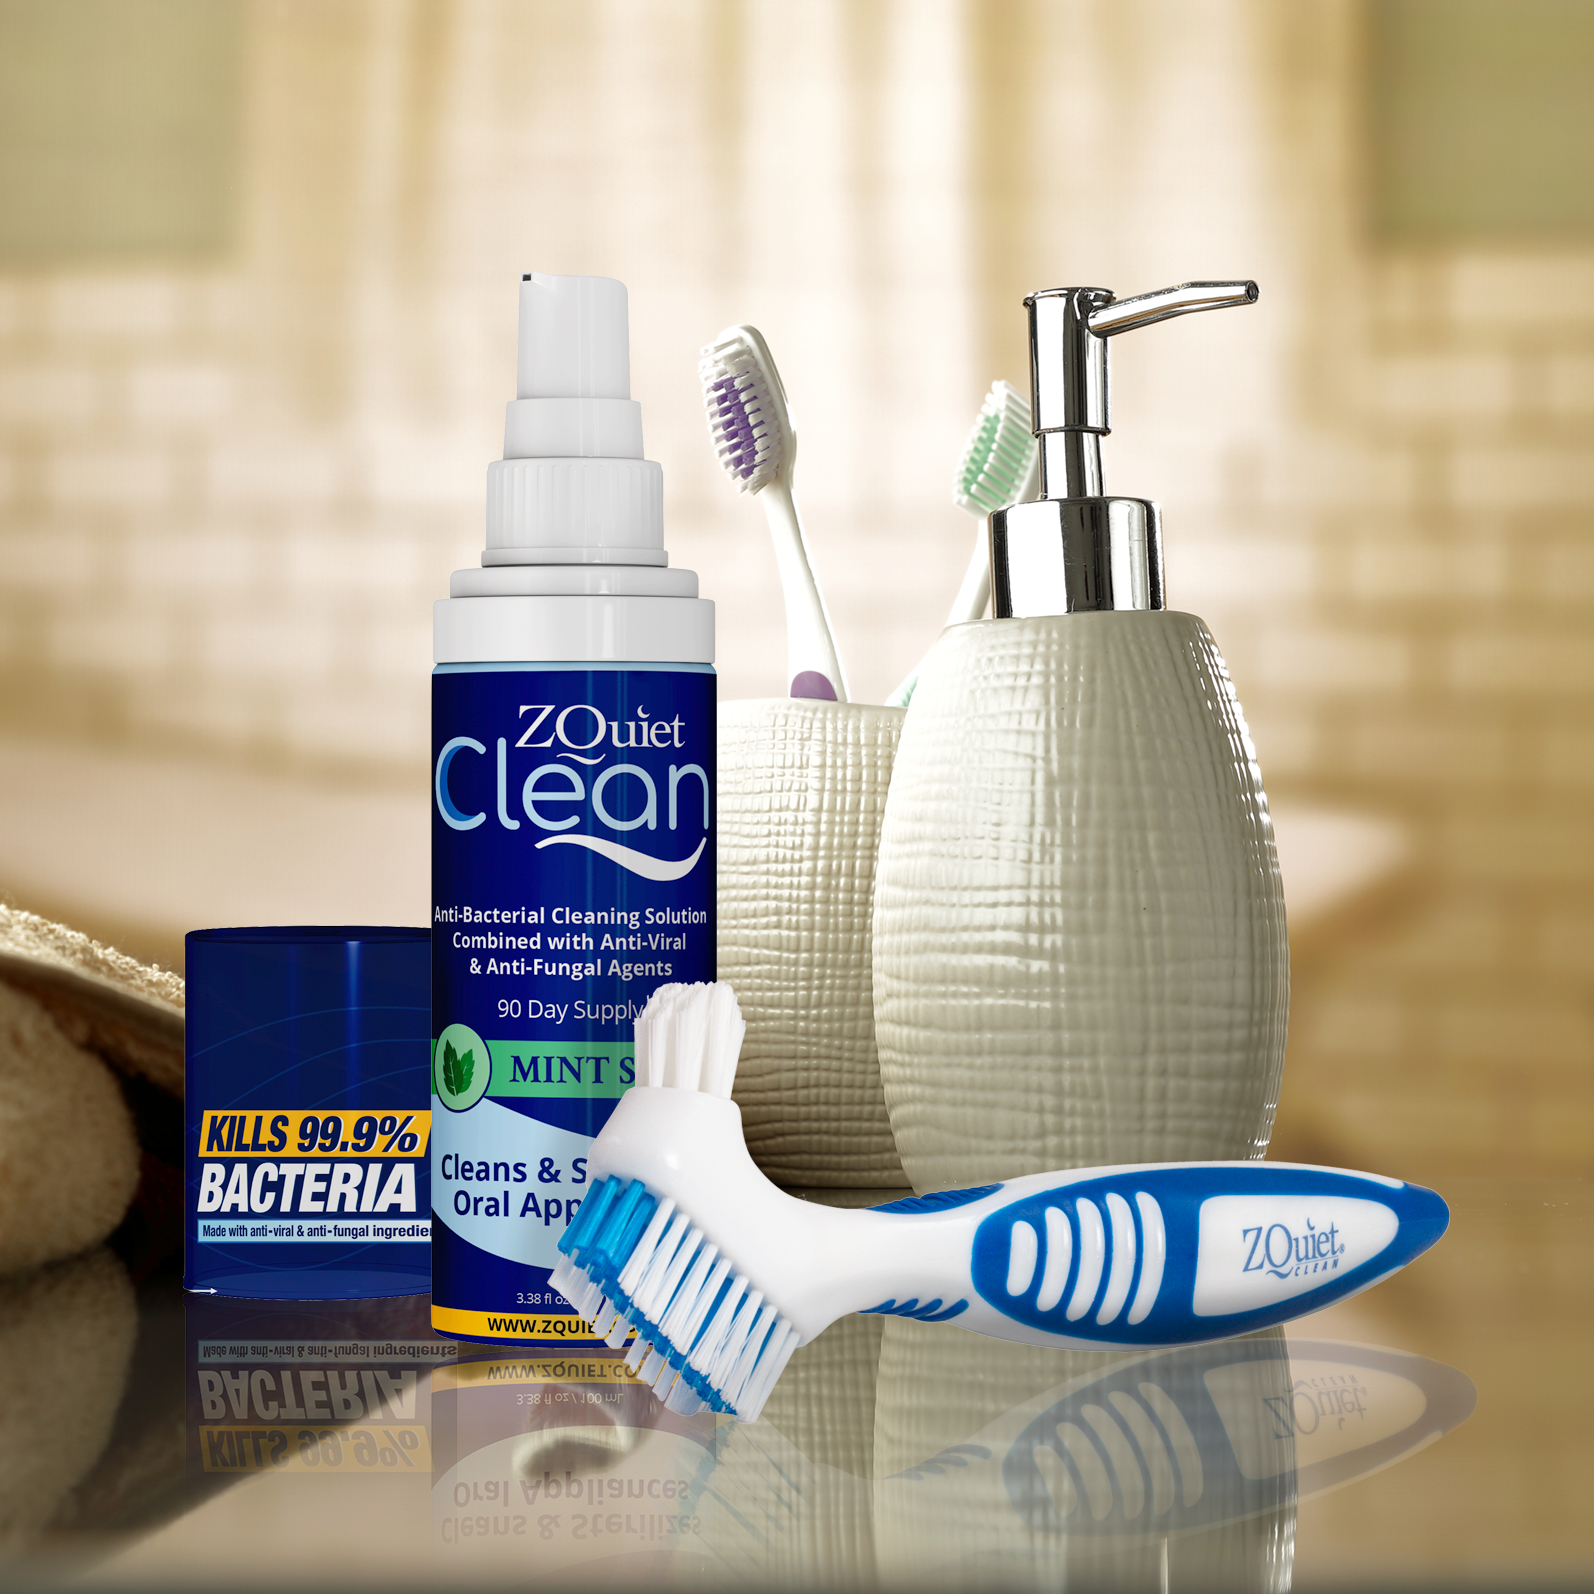 ZQuiet Clean disinfectant oral device cleaner